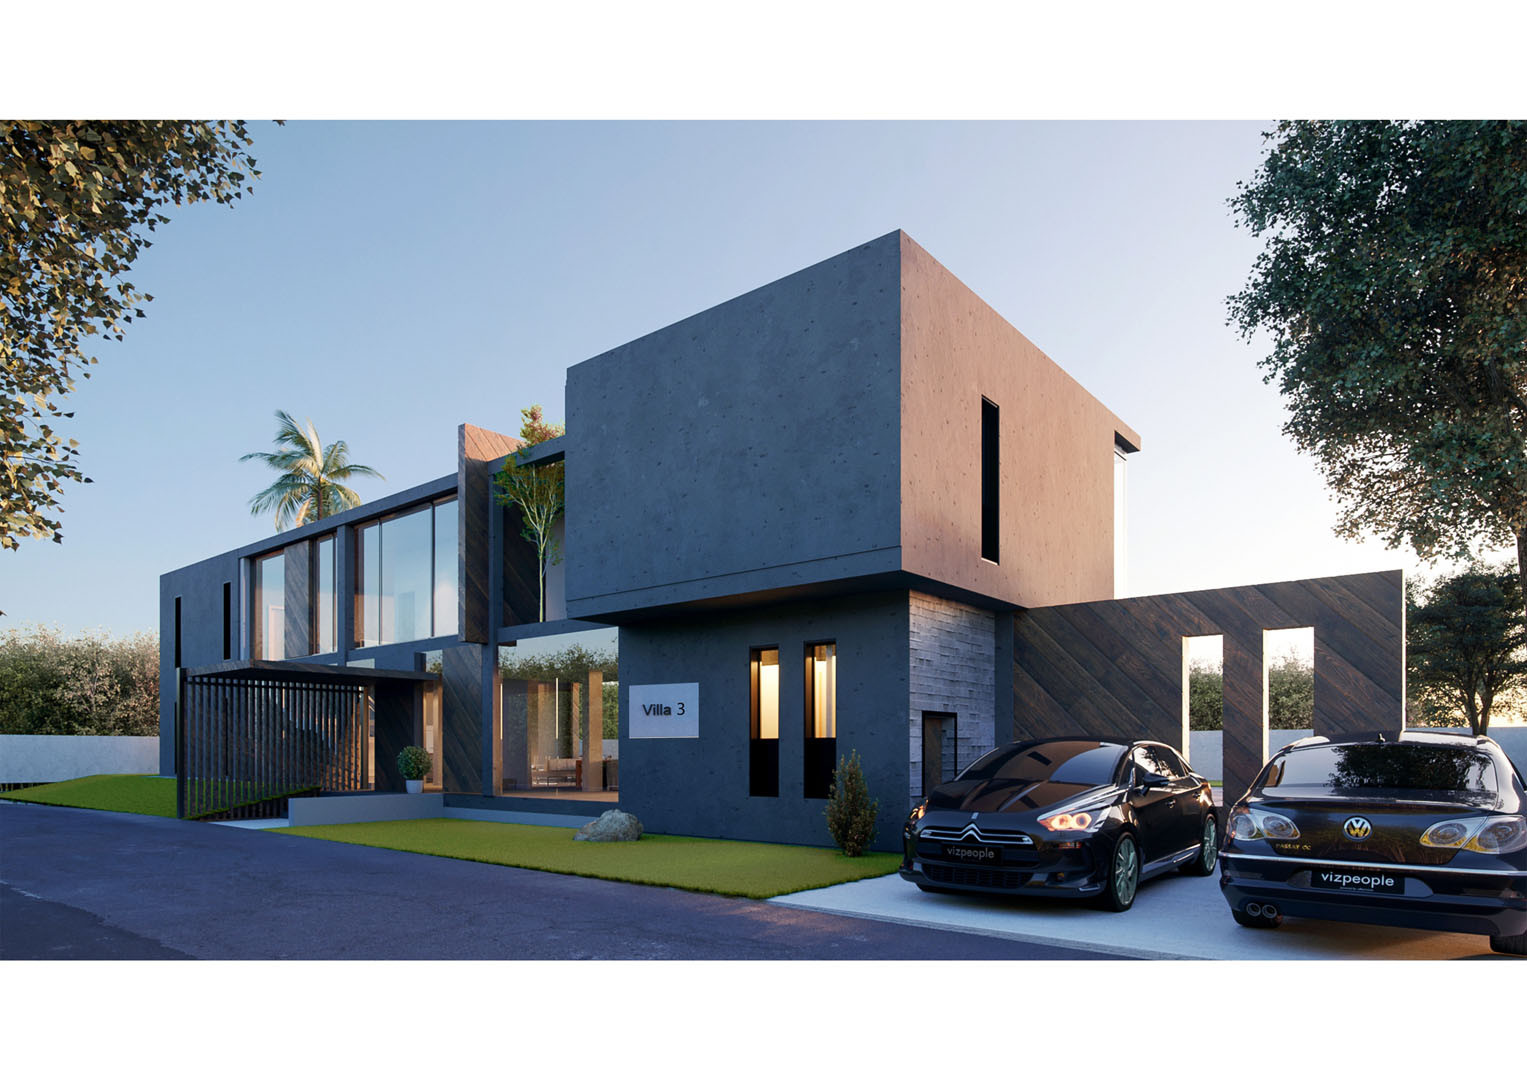 Villa 3 Back View